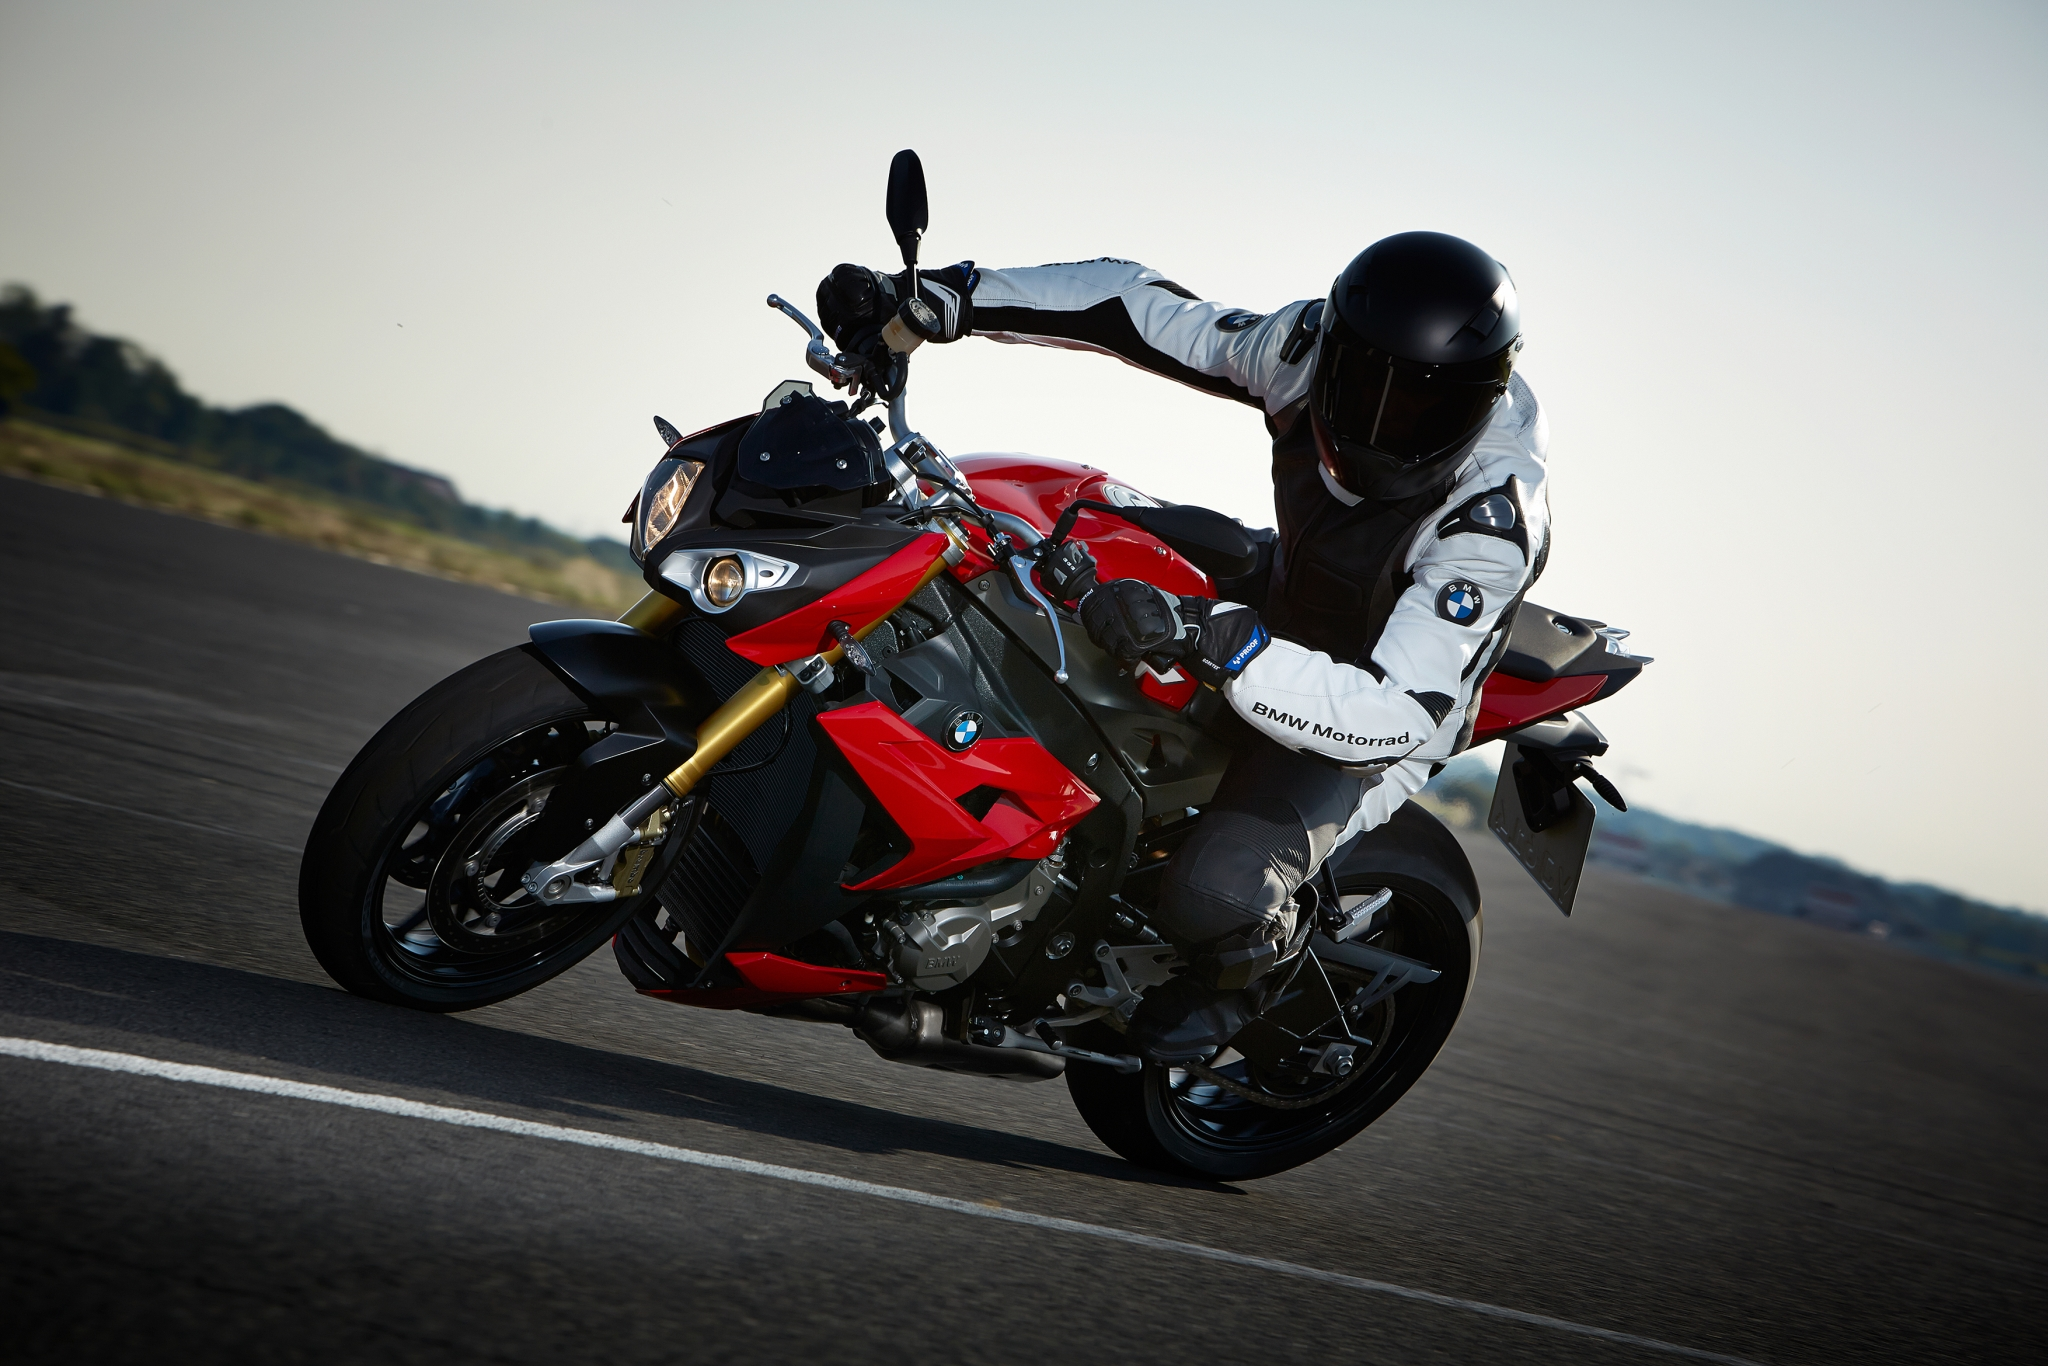 2014-bmw-s1000r-even-more-evil-than-the-rr-photo-gallery 3